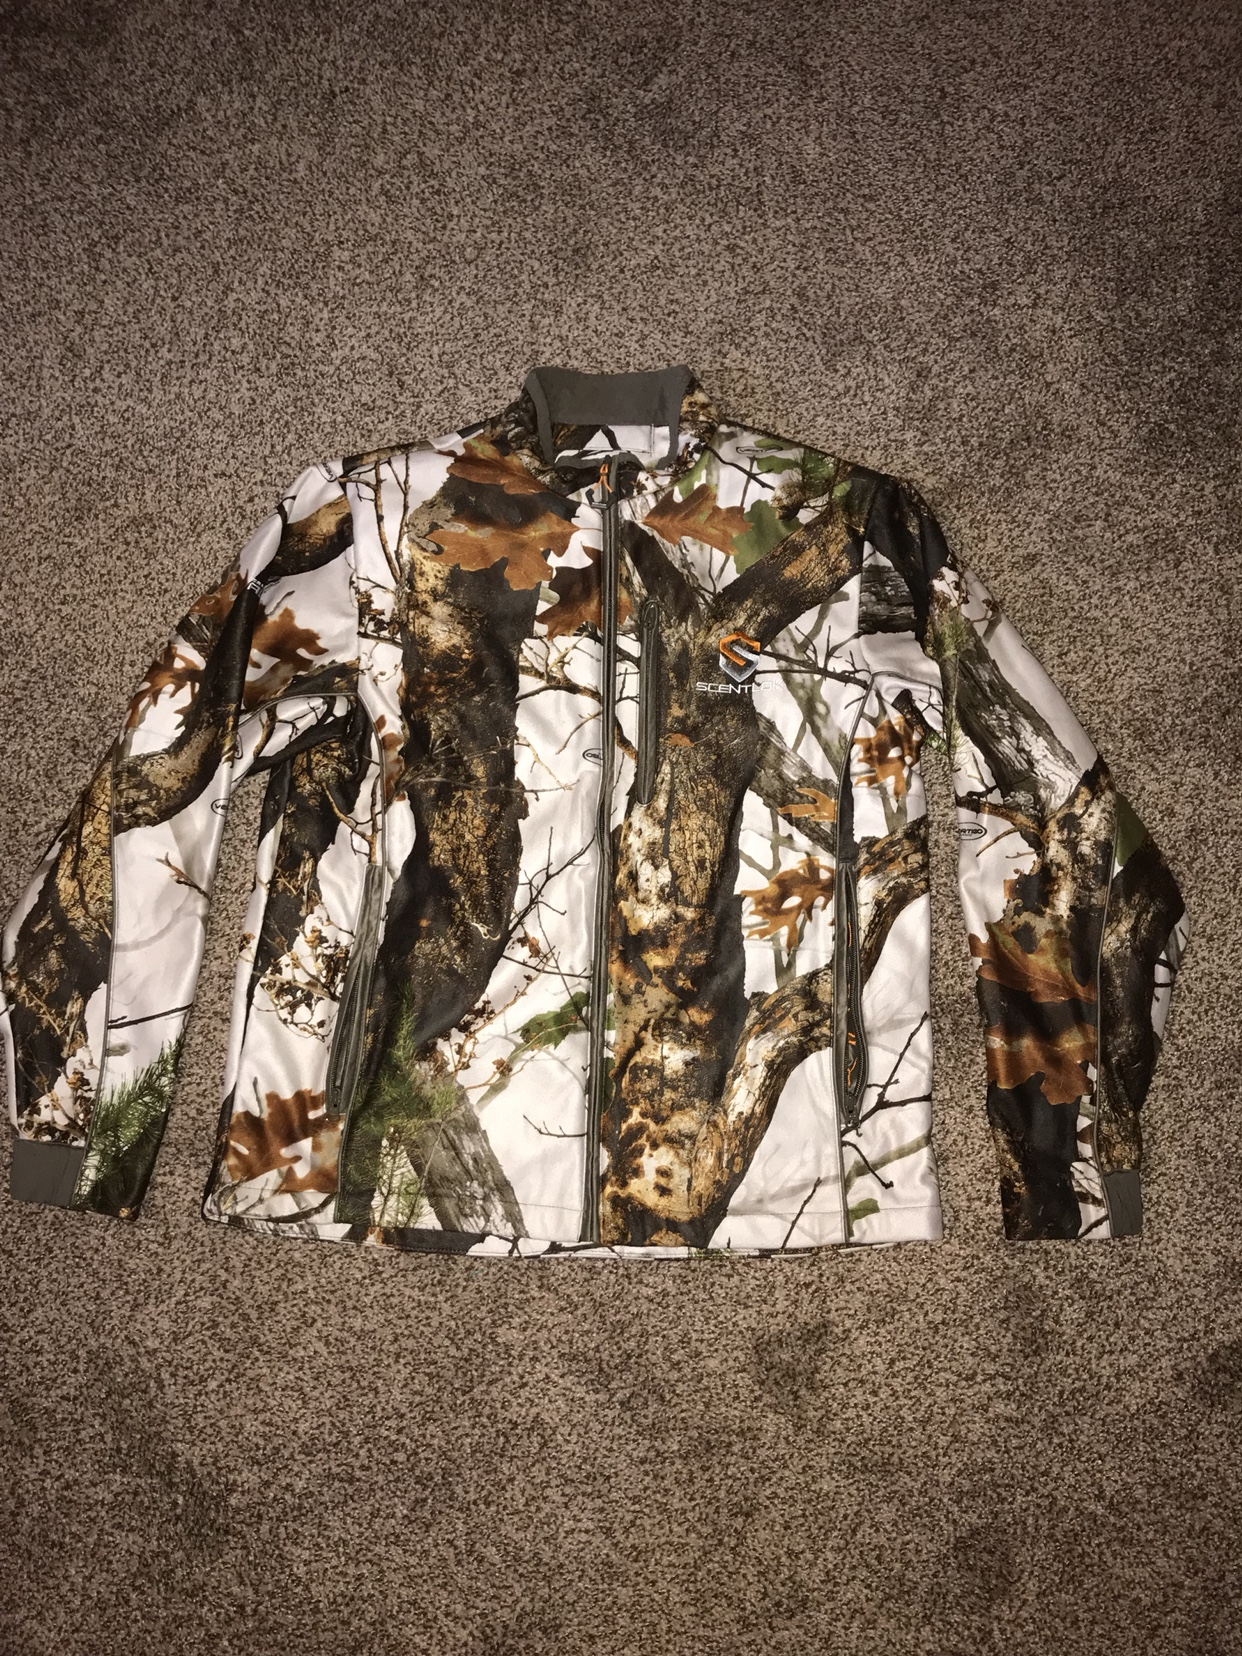 a617078b4dbcc Scent Lok Velocity Jacket and Pants | Iowawhitetail forums